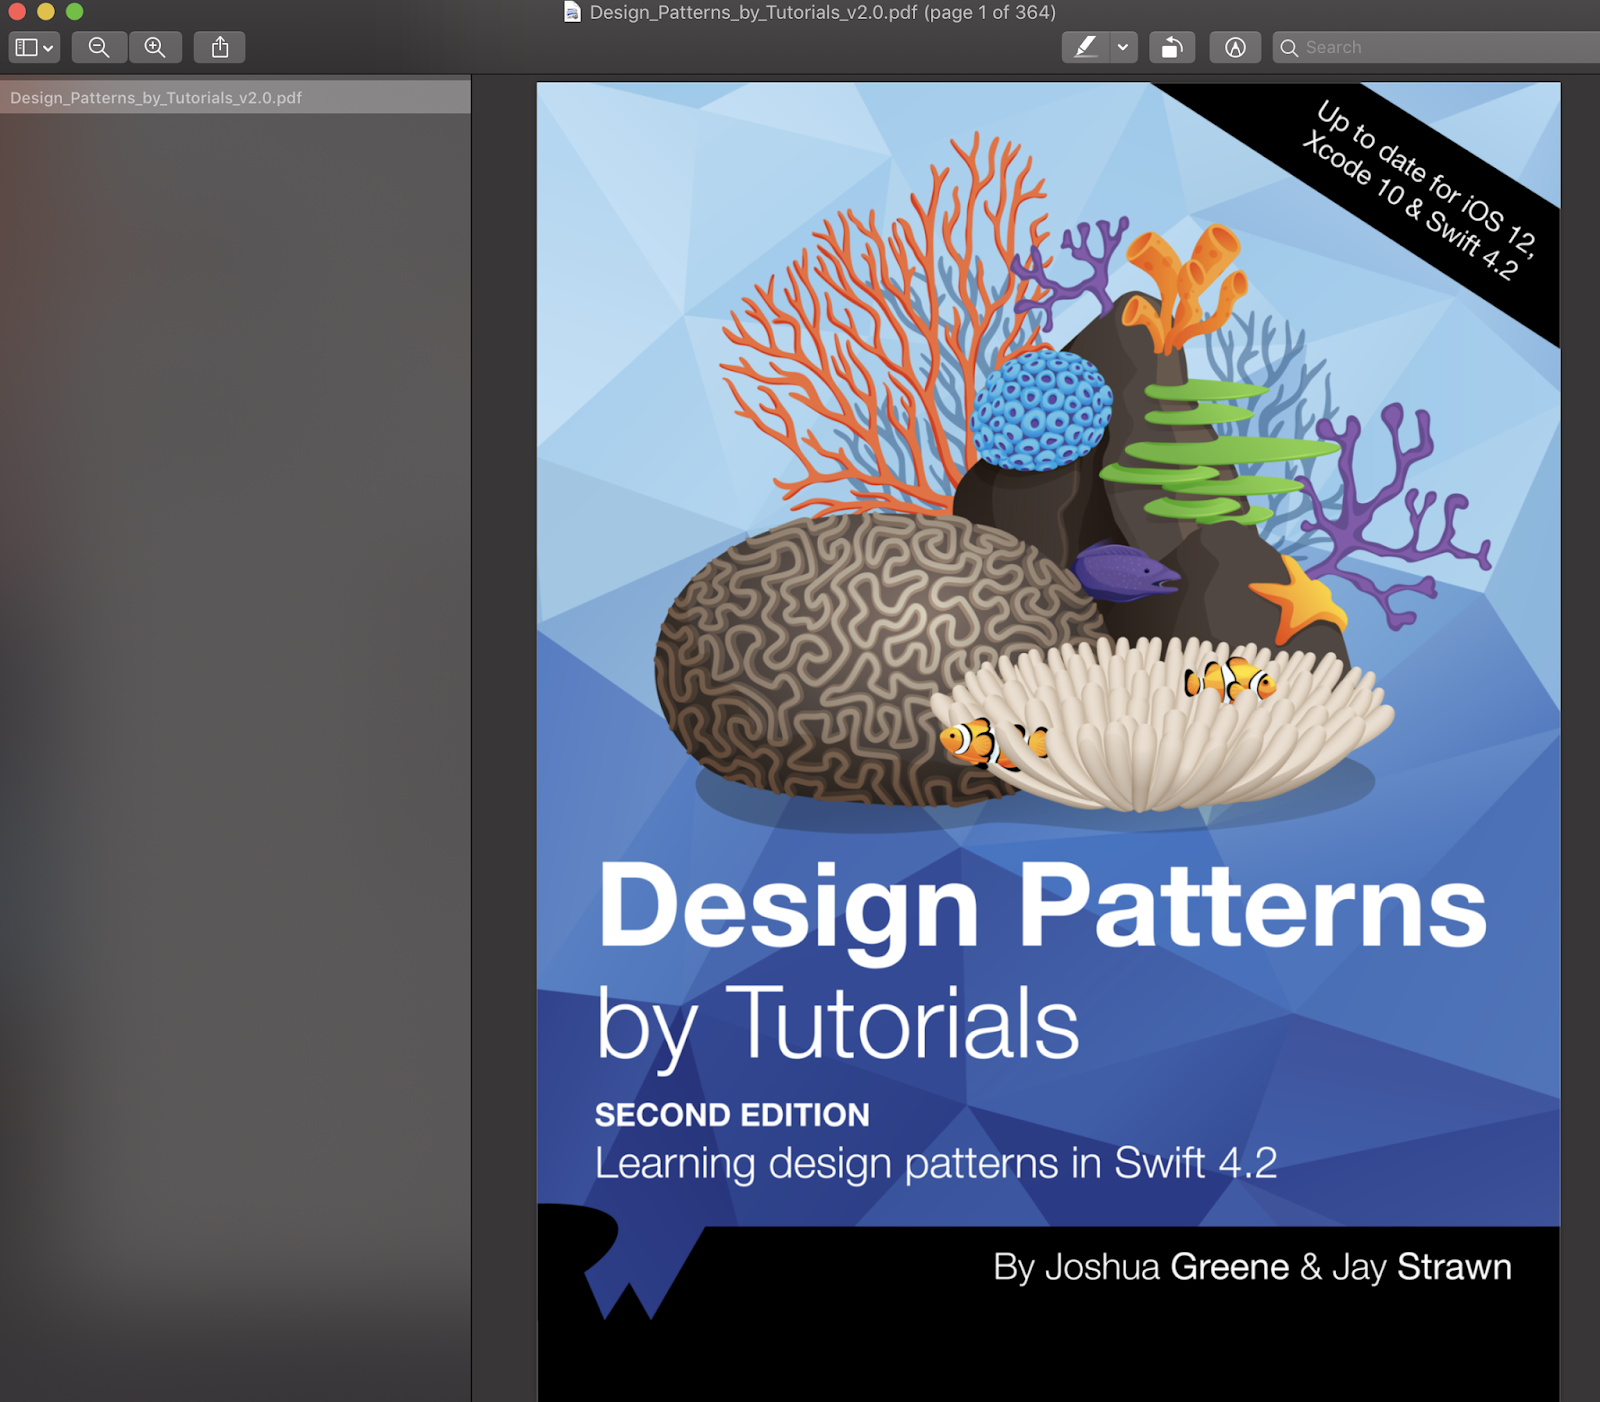 Design Patterns By Tutorials Pdf: Design Patterns by Tutorials Second Edition Update for Swift 4.2 and rh:prograbooks.com,Design